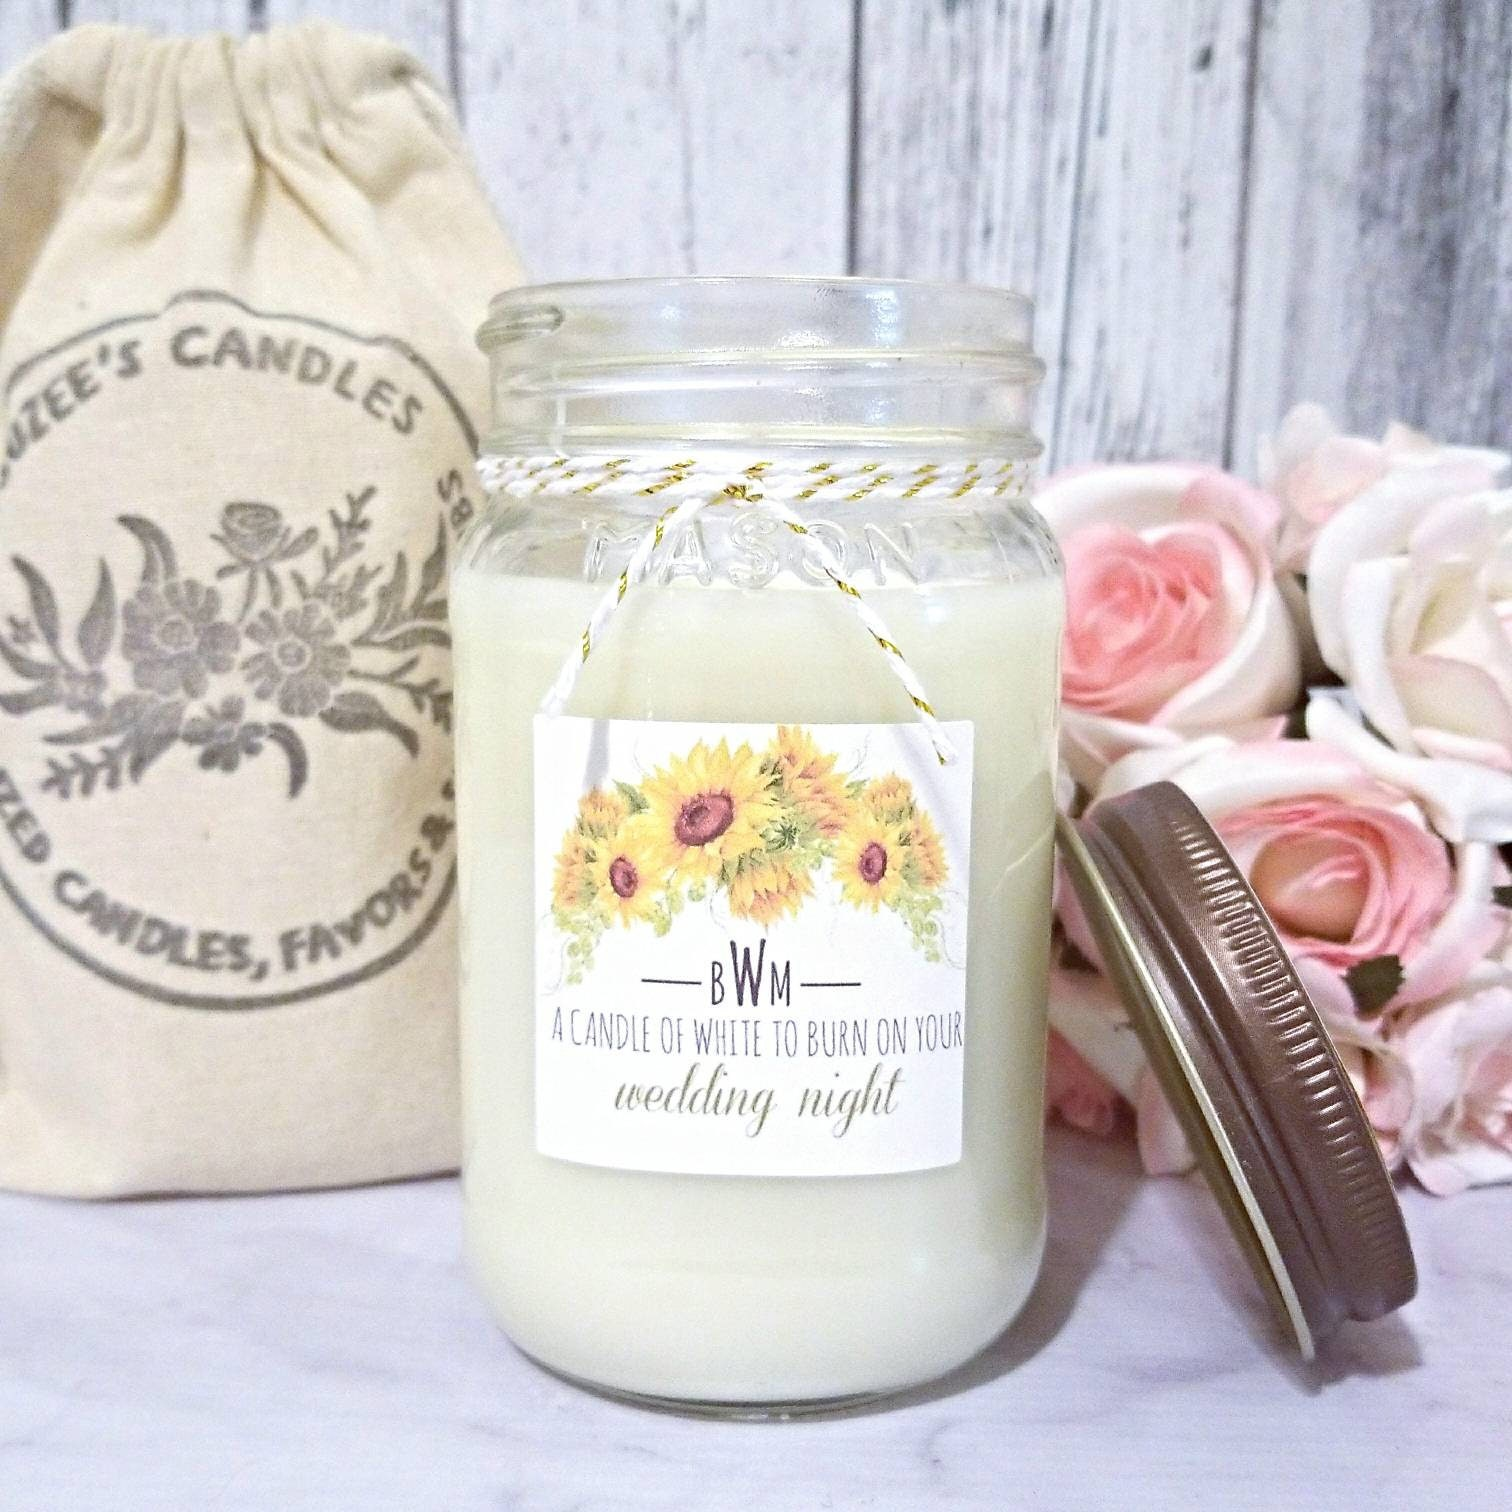 Wedding Candle Gift - Couples Wedding Gift - Soy Candle Wedding ...